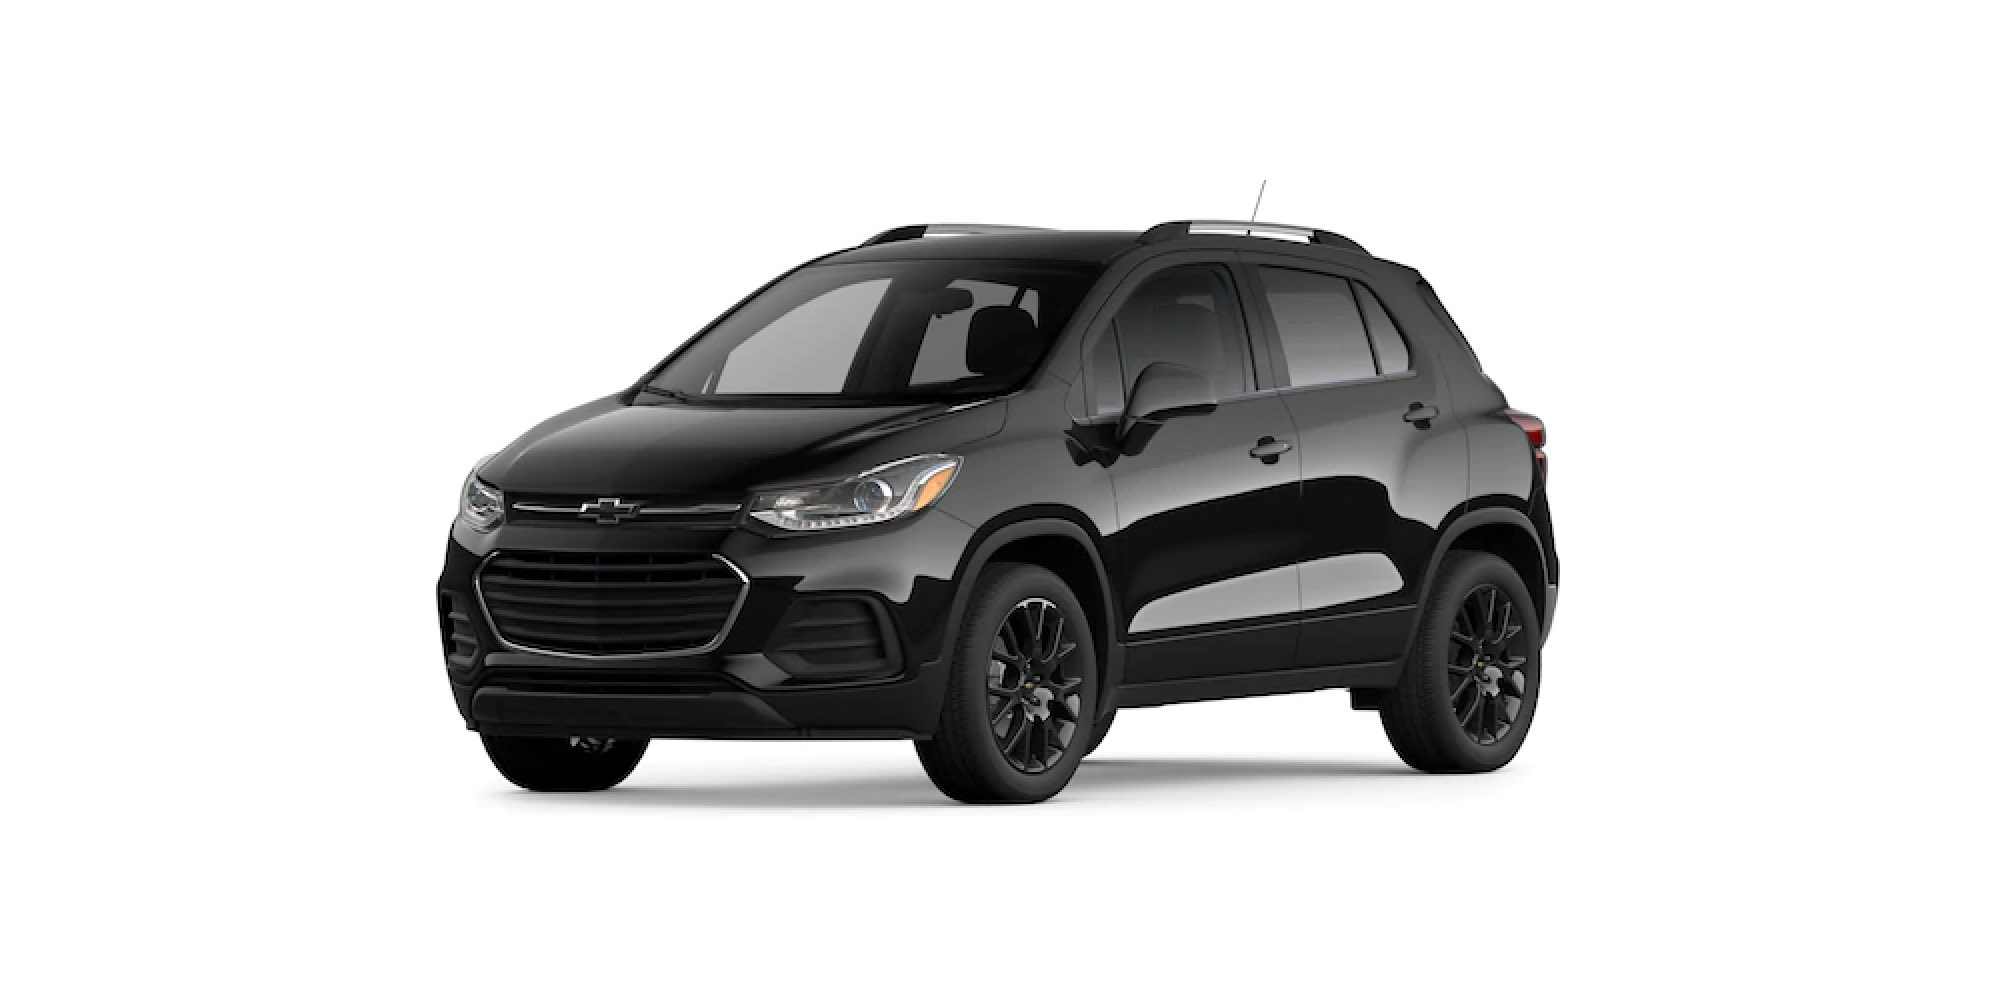 2021 Chevy Trax in Mosaic Black Metallic